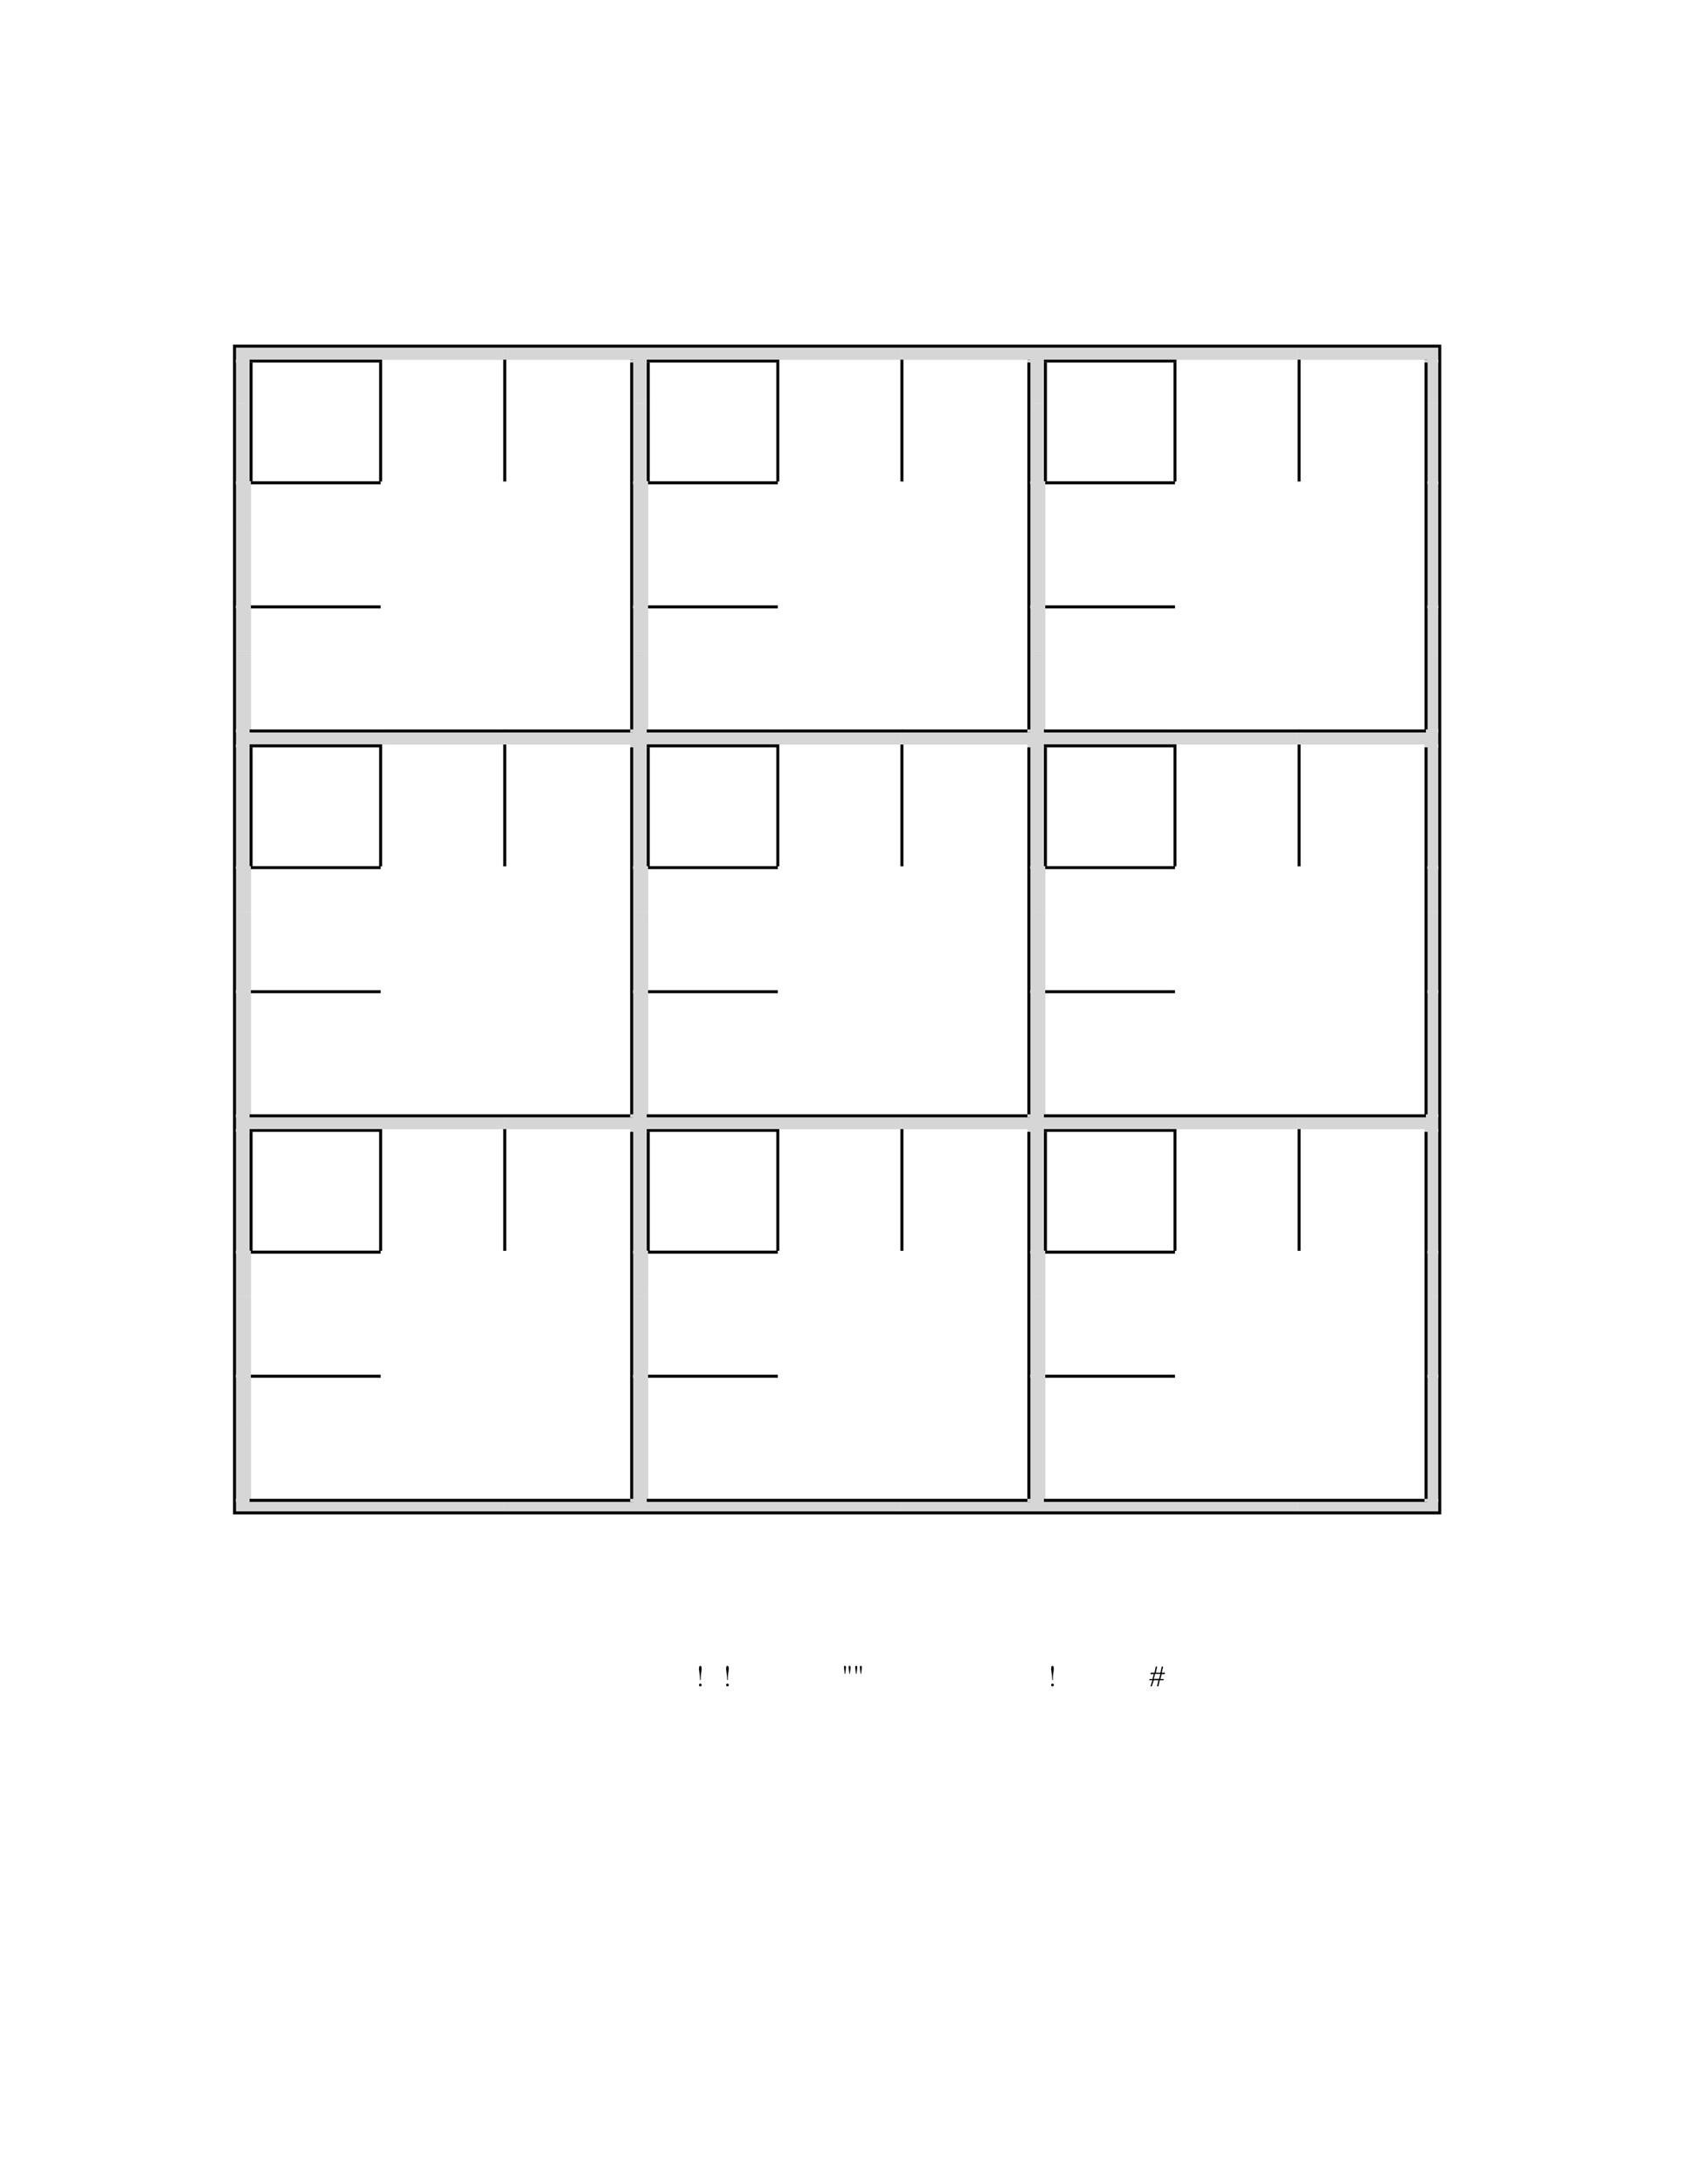 picture relating to Printable Sudoku Grids called 50 Blank Sudoku Grids [Cost-free Printable] ᐅ Template Lab